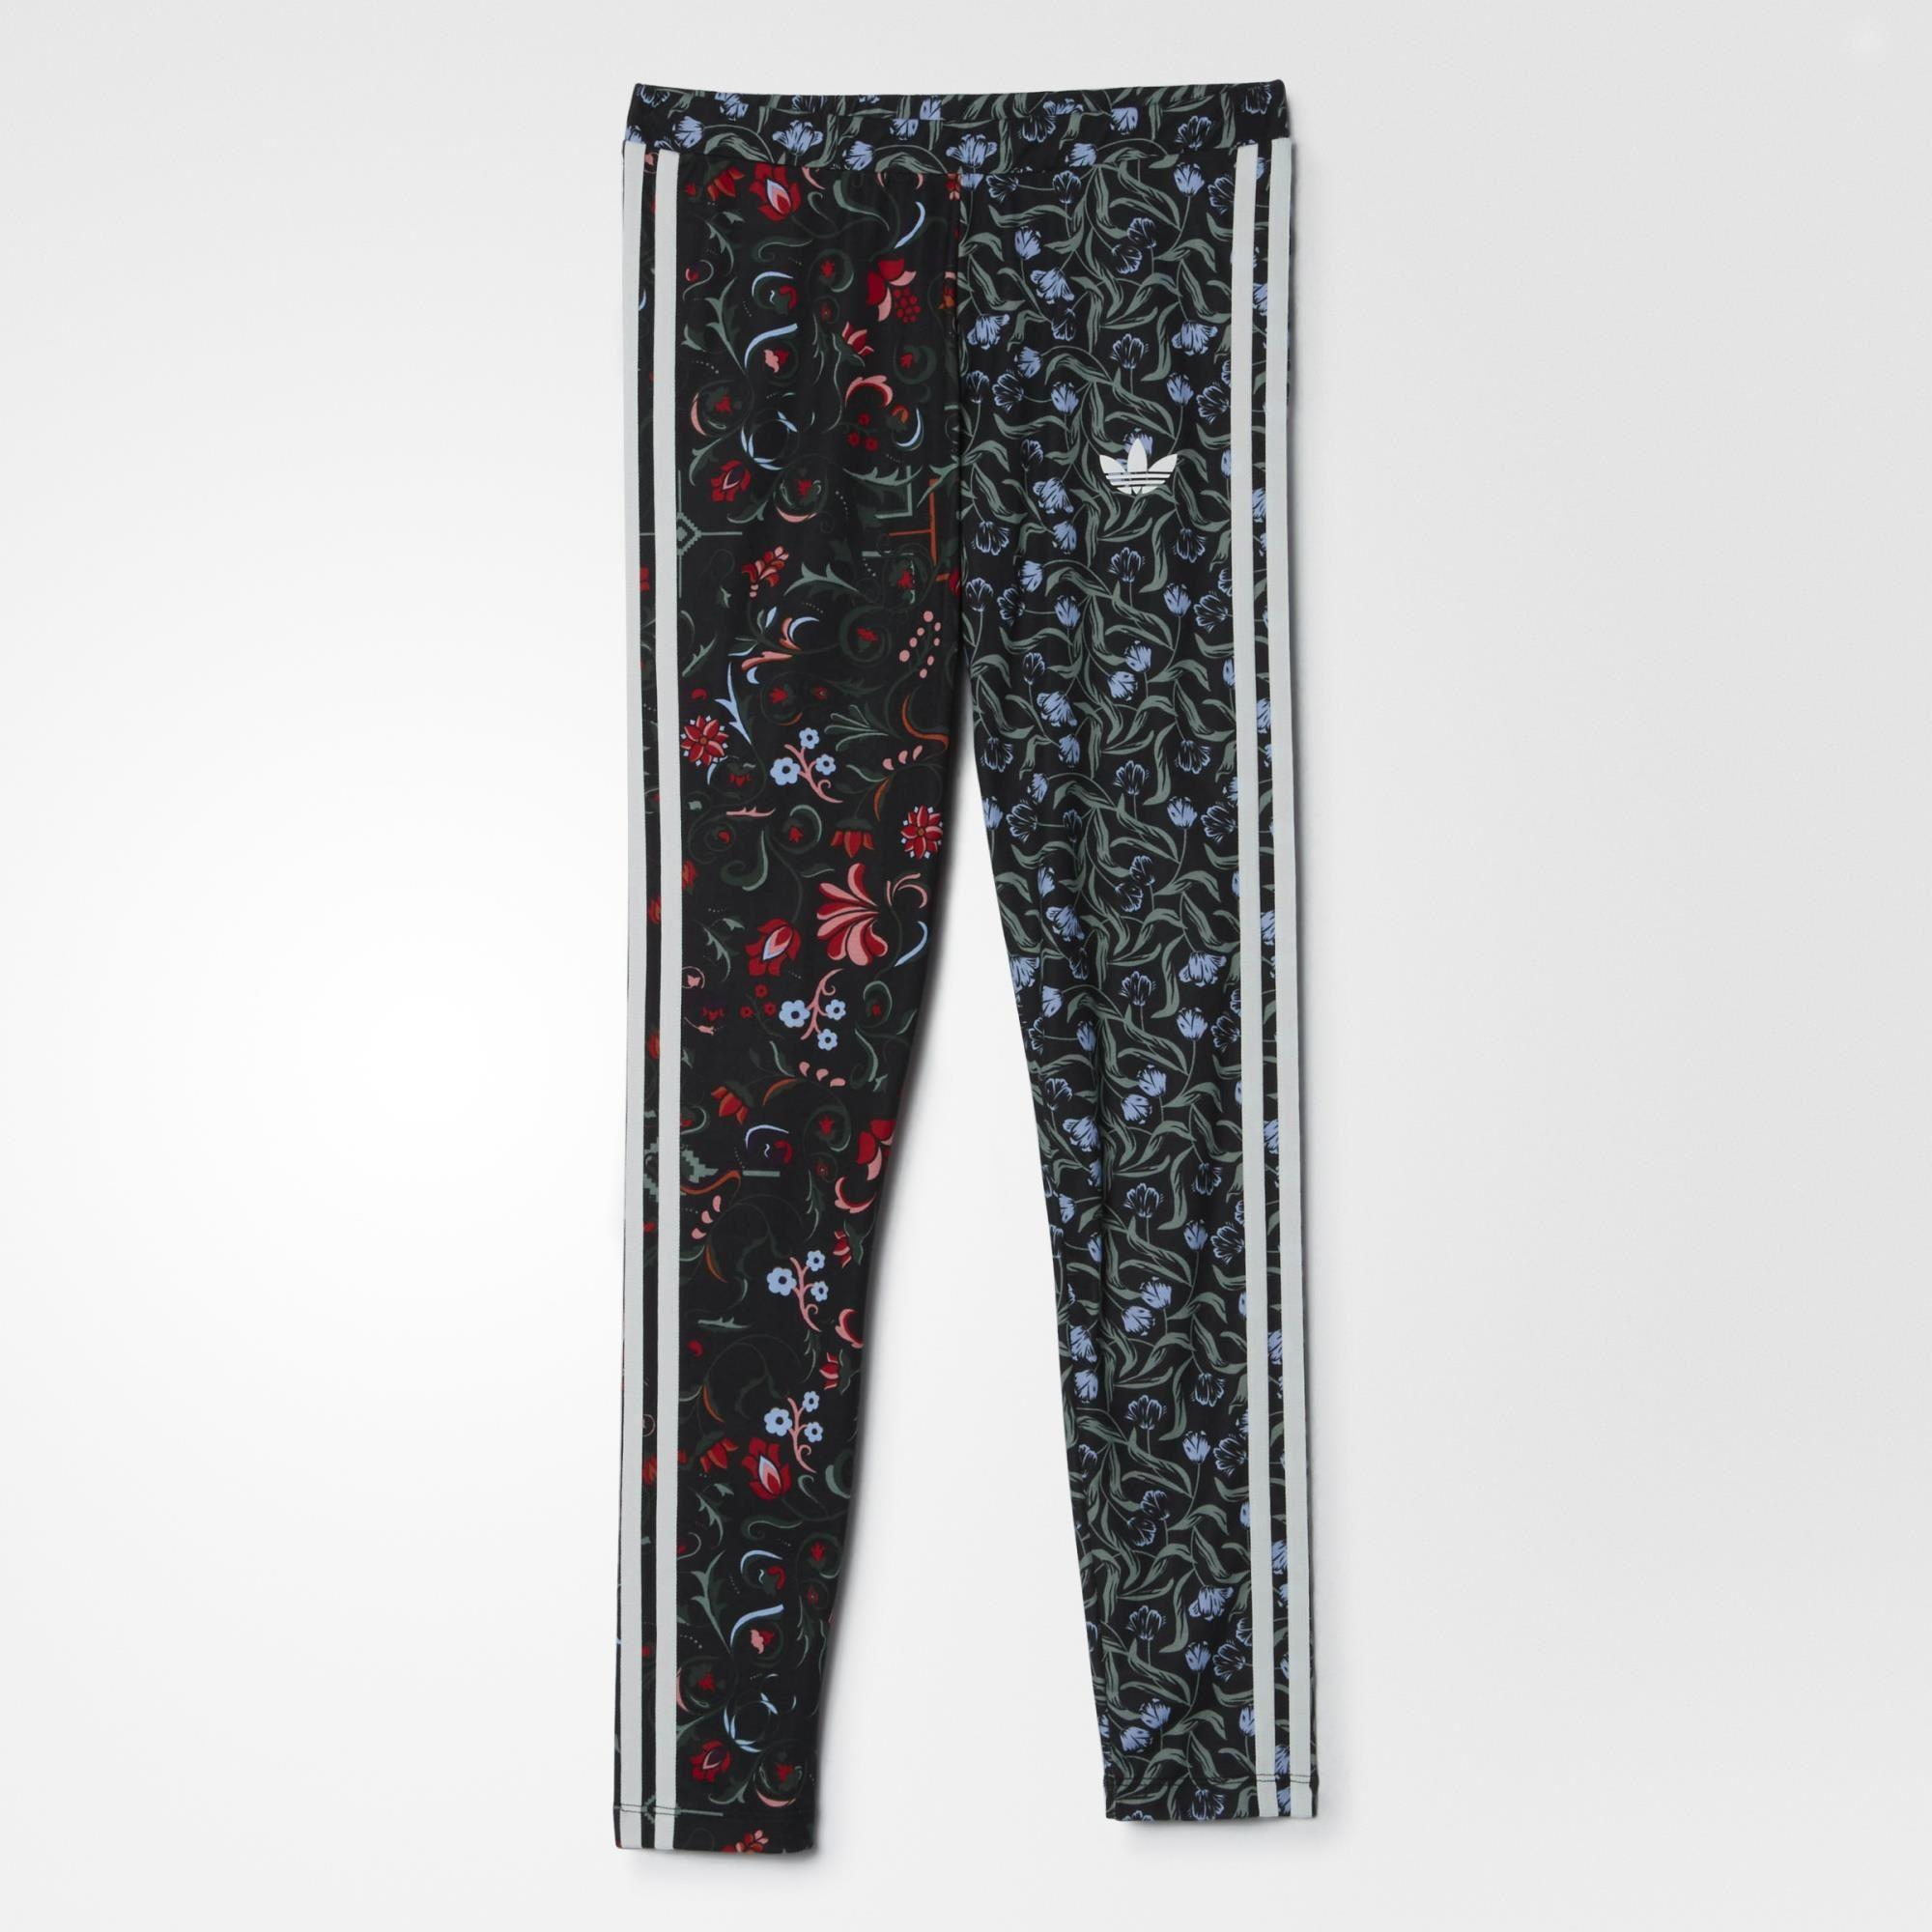 533959d0ba1 adidas Moscow Print Mix Leggings - from adidas